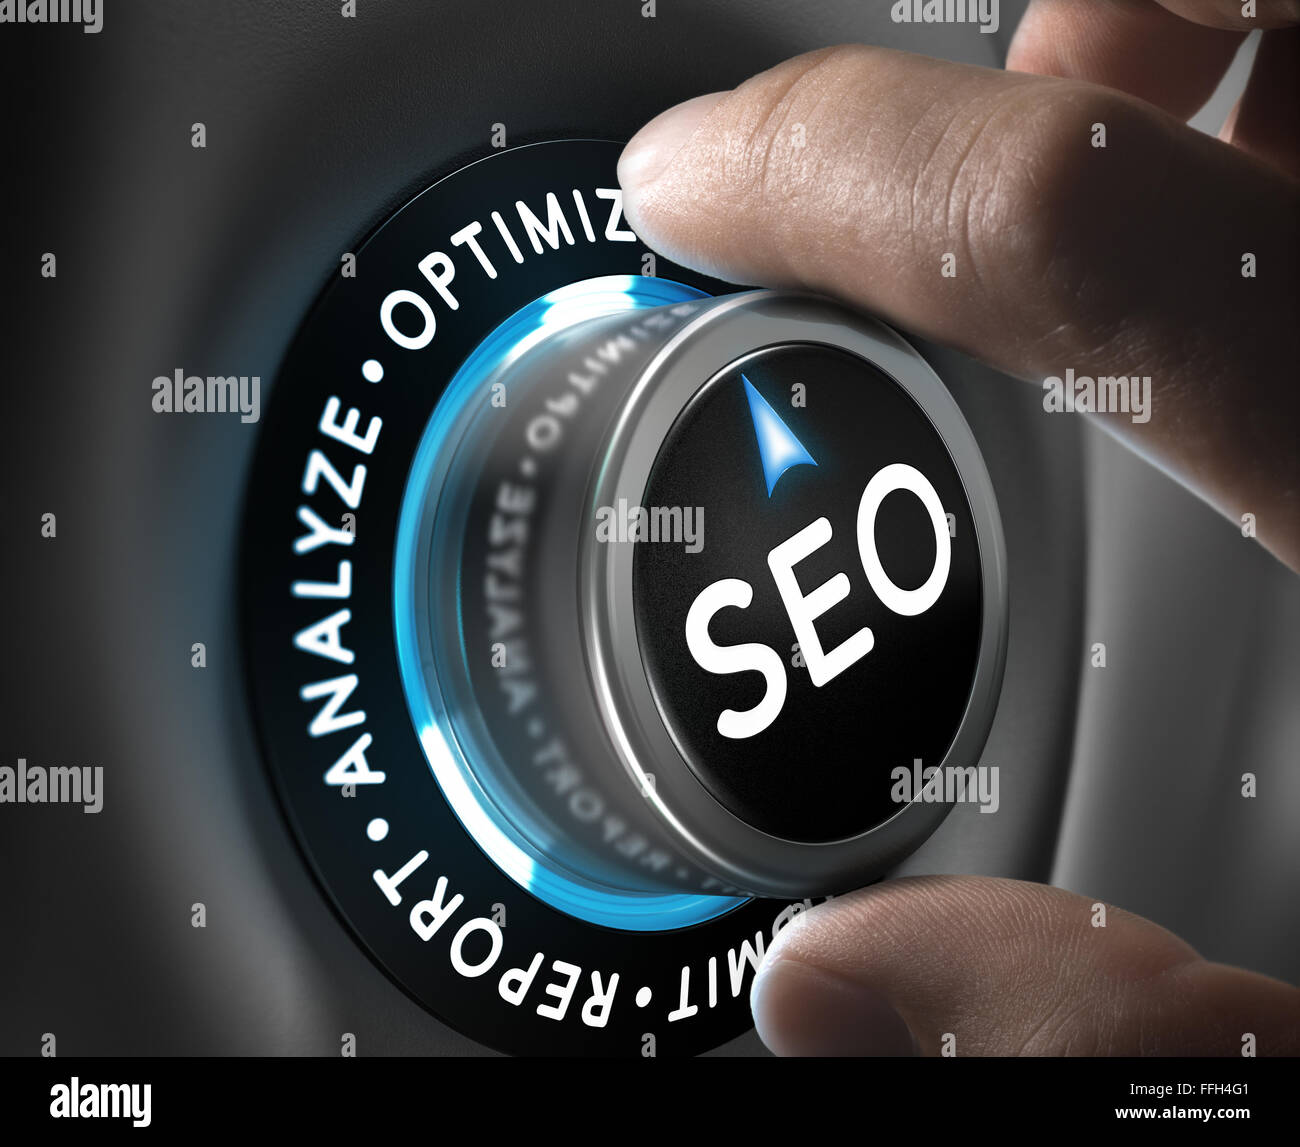 Man hand turning a knob in the optimize position. SEO process and planning concept. - Stock Image